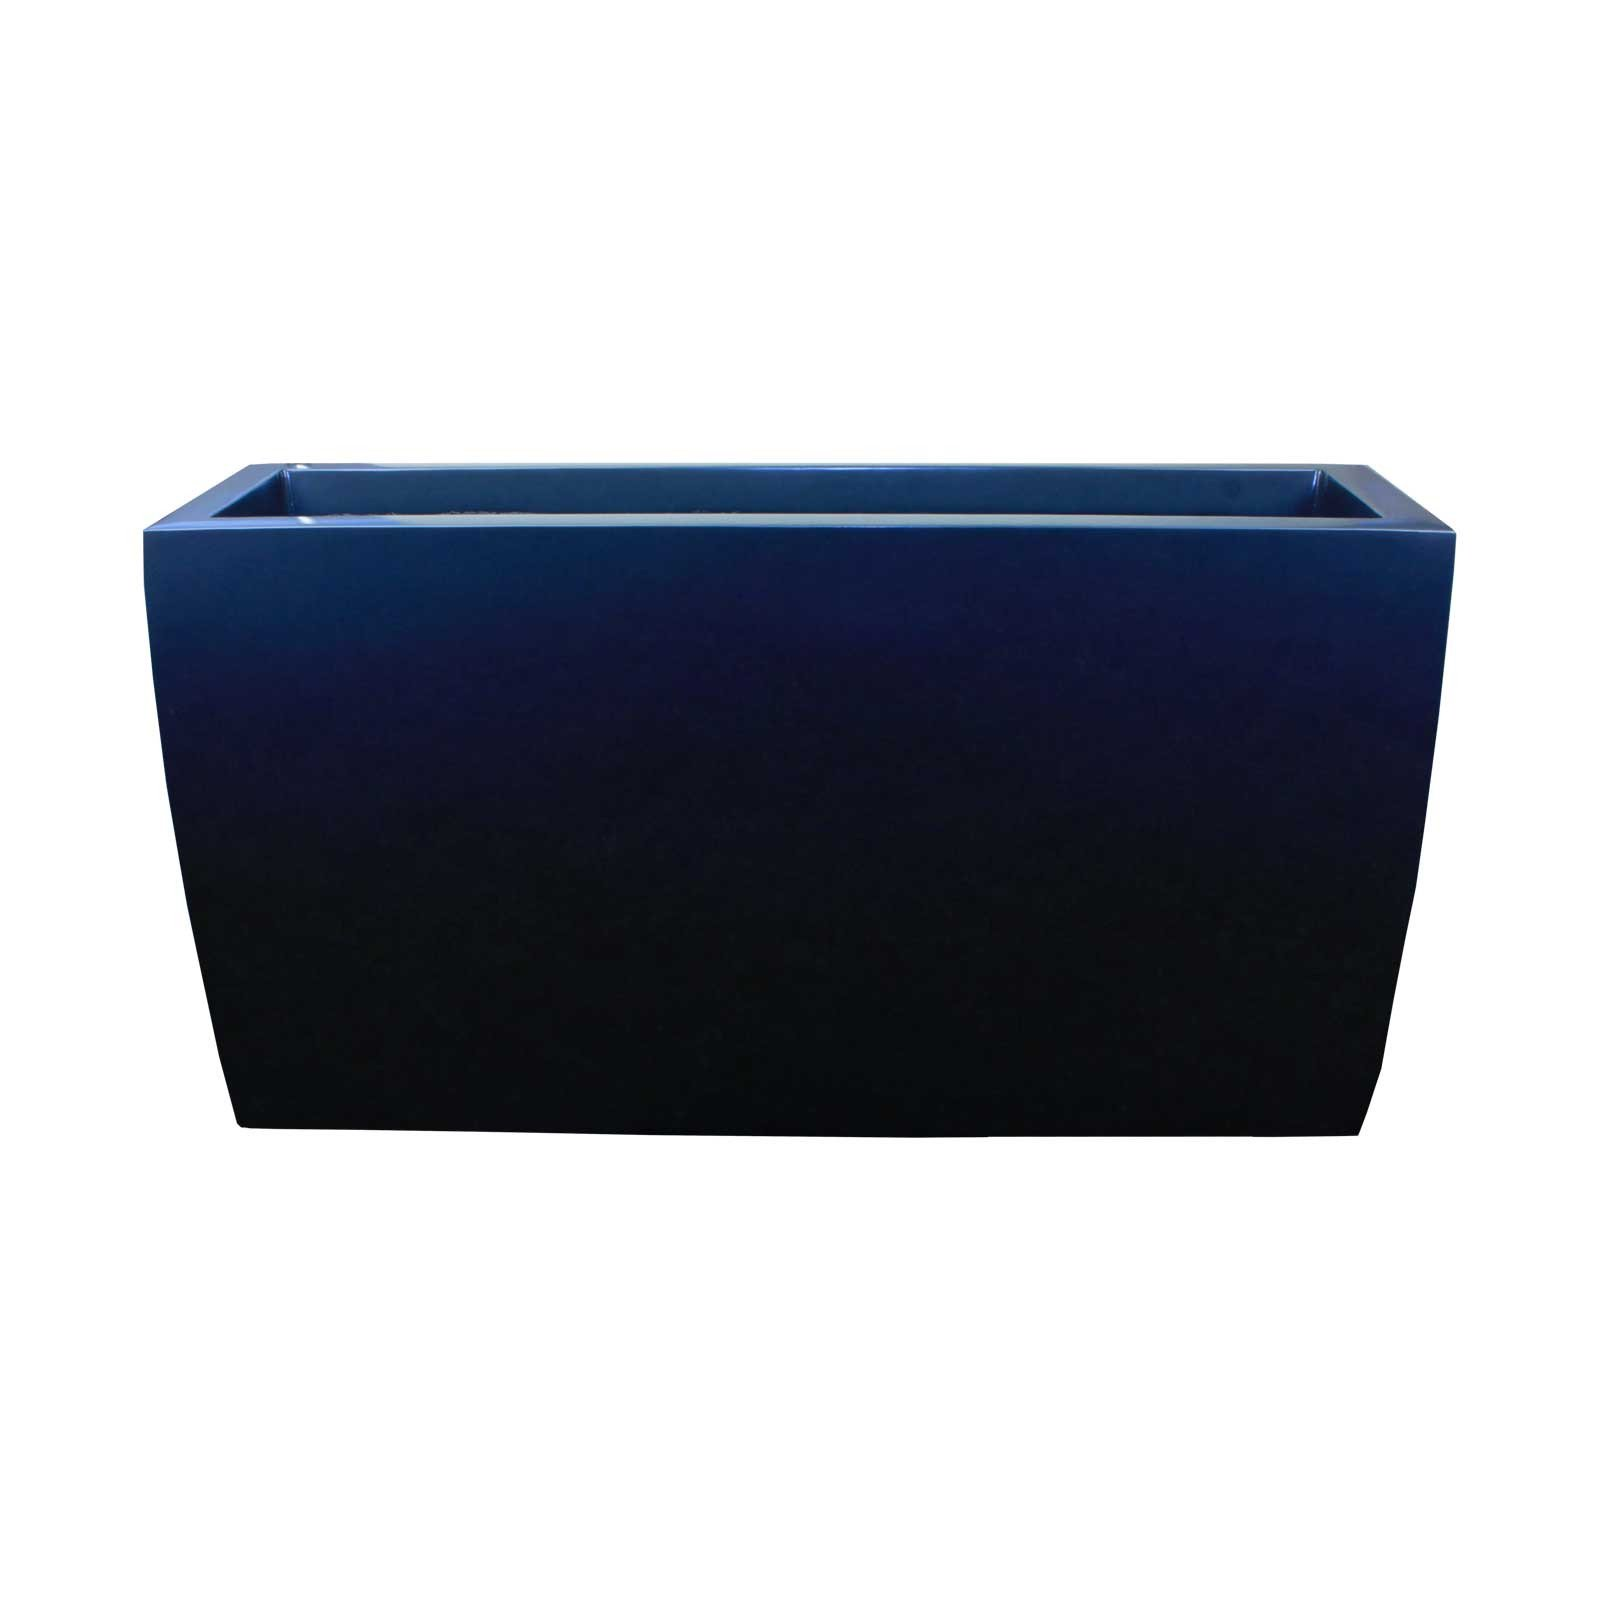 Tapered Planter Box - Fiberglass - 36'L x 12'W x 18'H - Panama by Jay Scotts